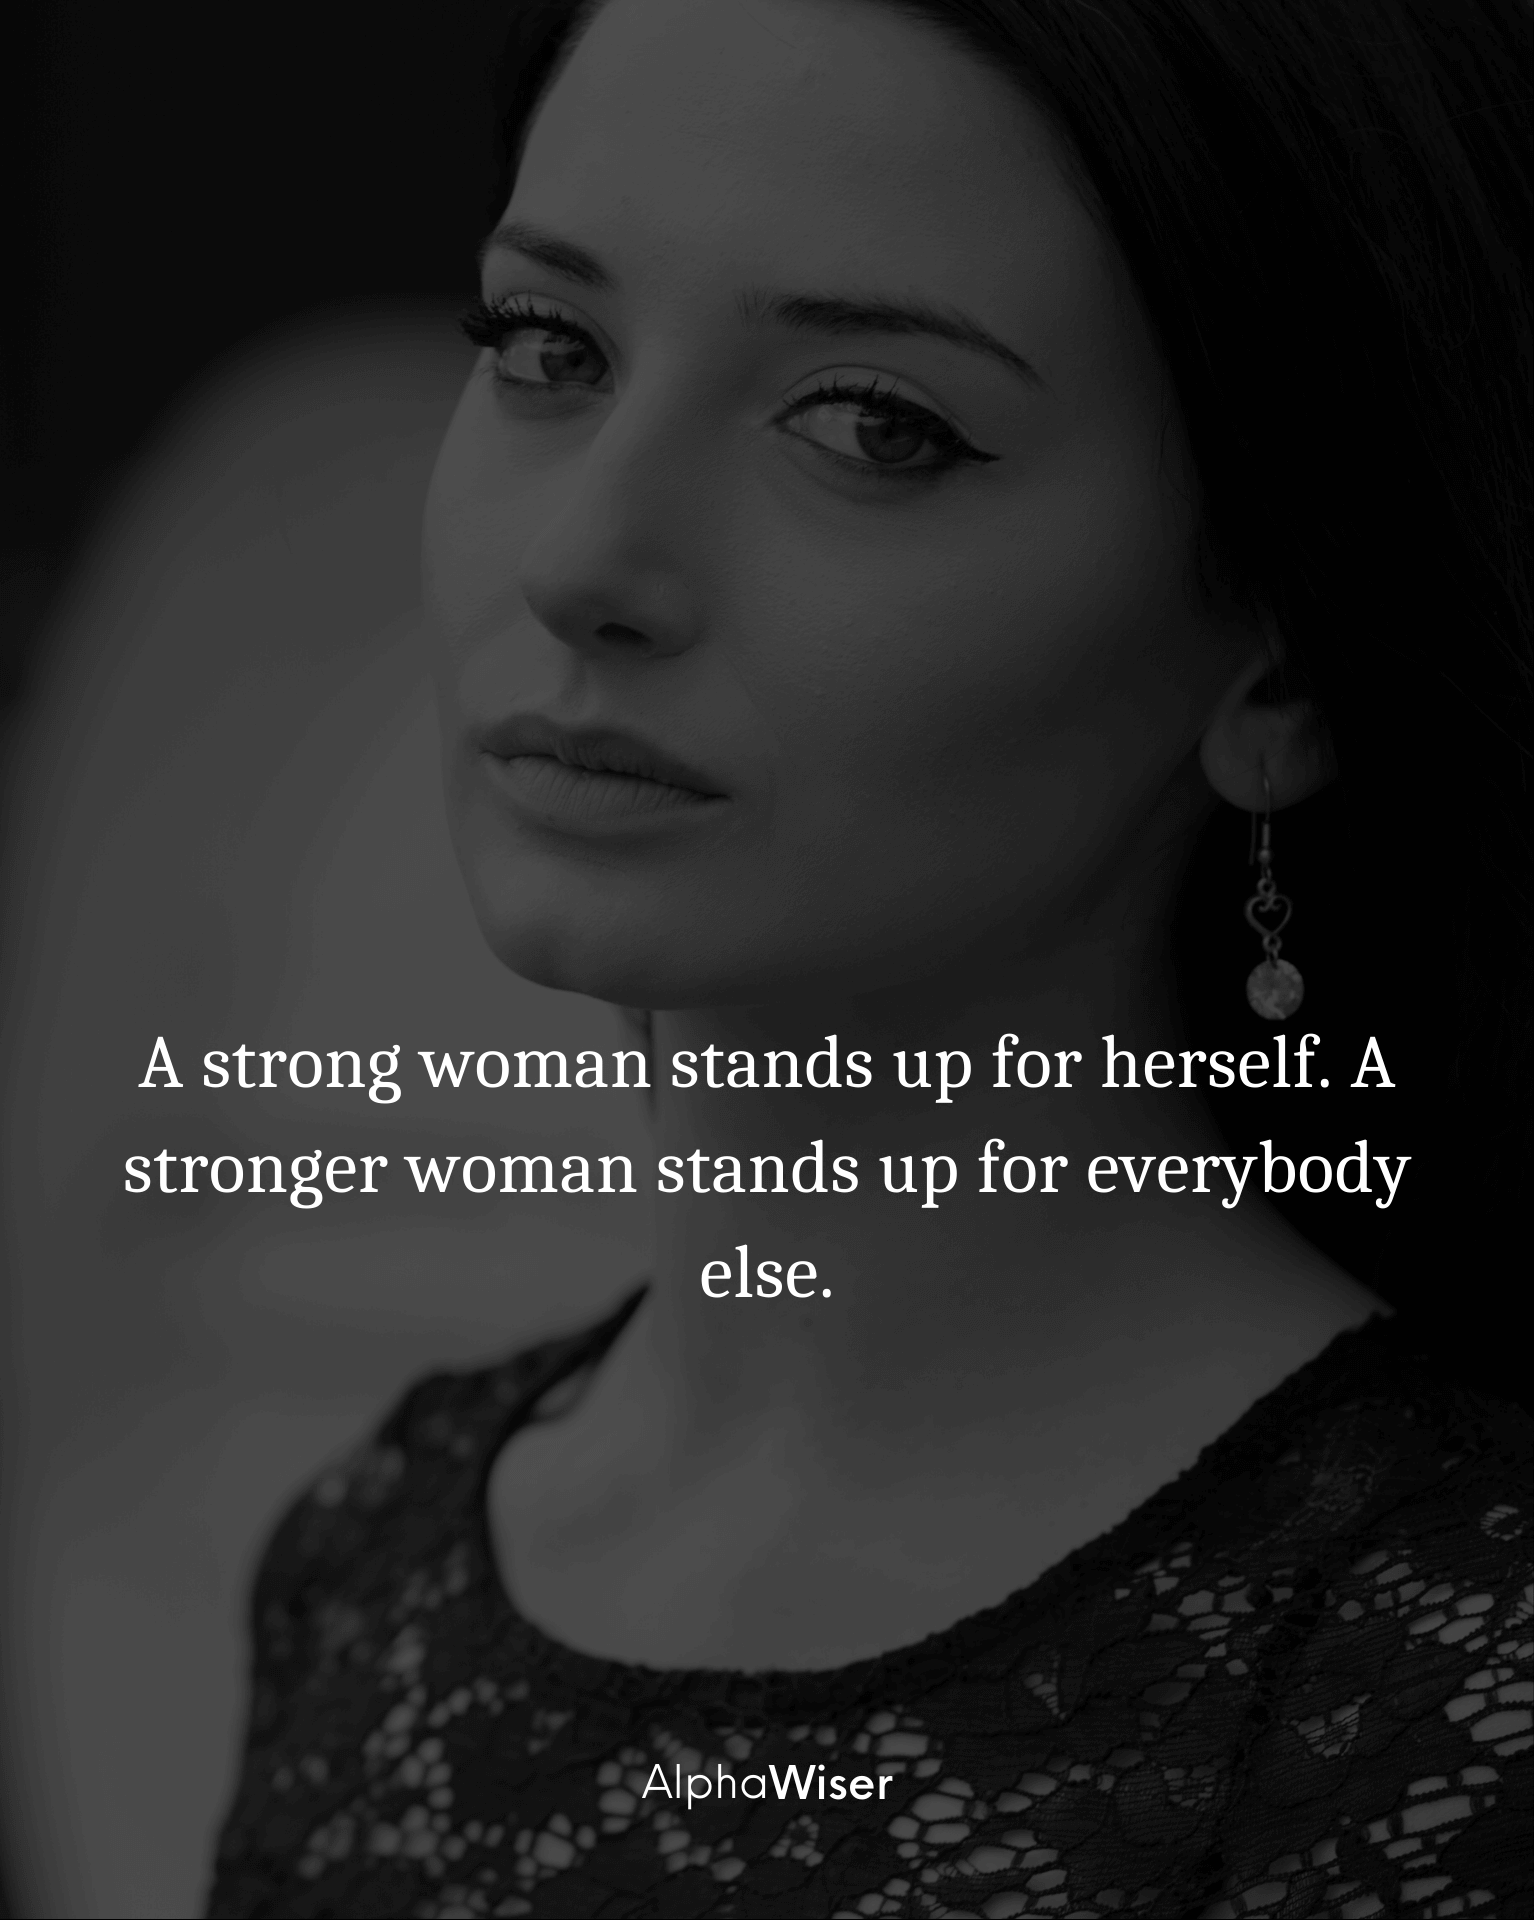 A strong woman stands up for herself. A stronger woman stands up for everybody else.